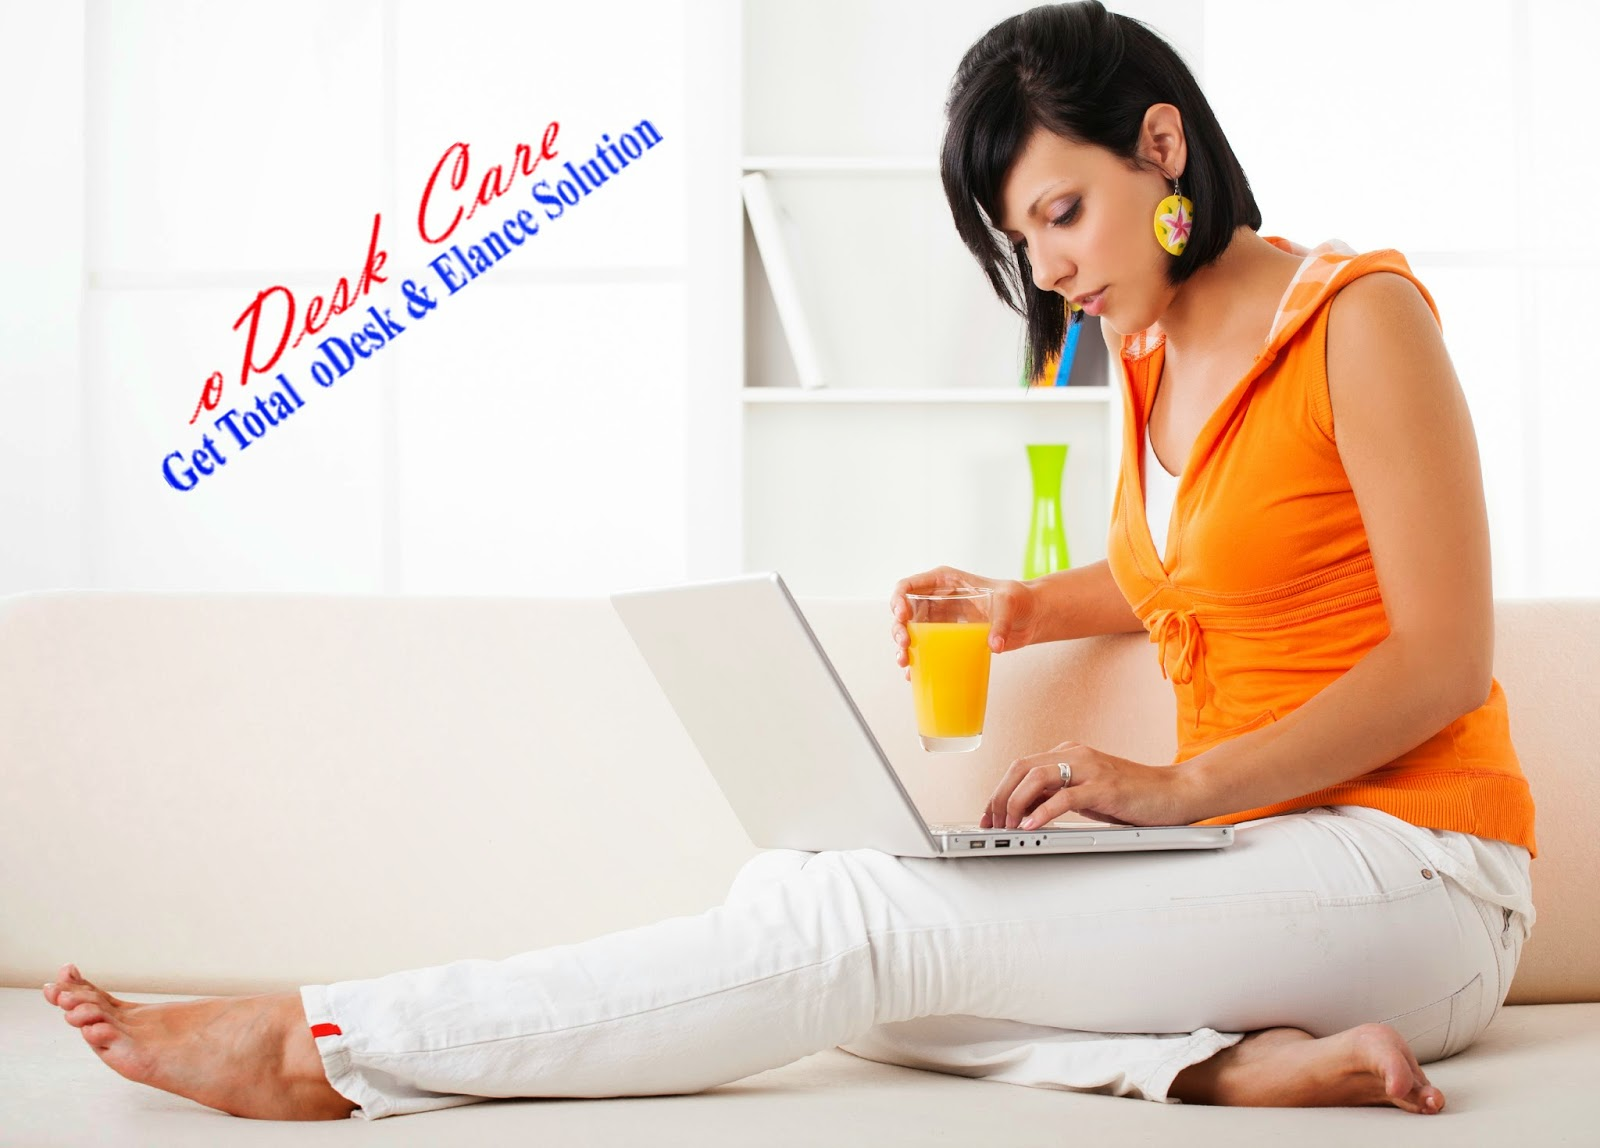 com an easy method for new lancers to get easy online jobs at odesk